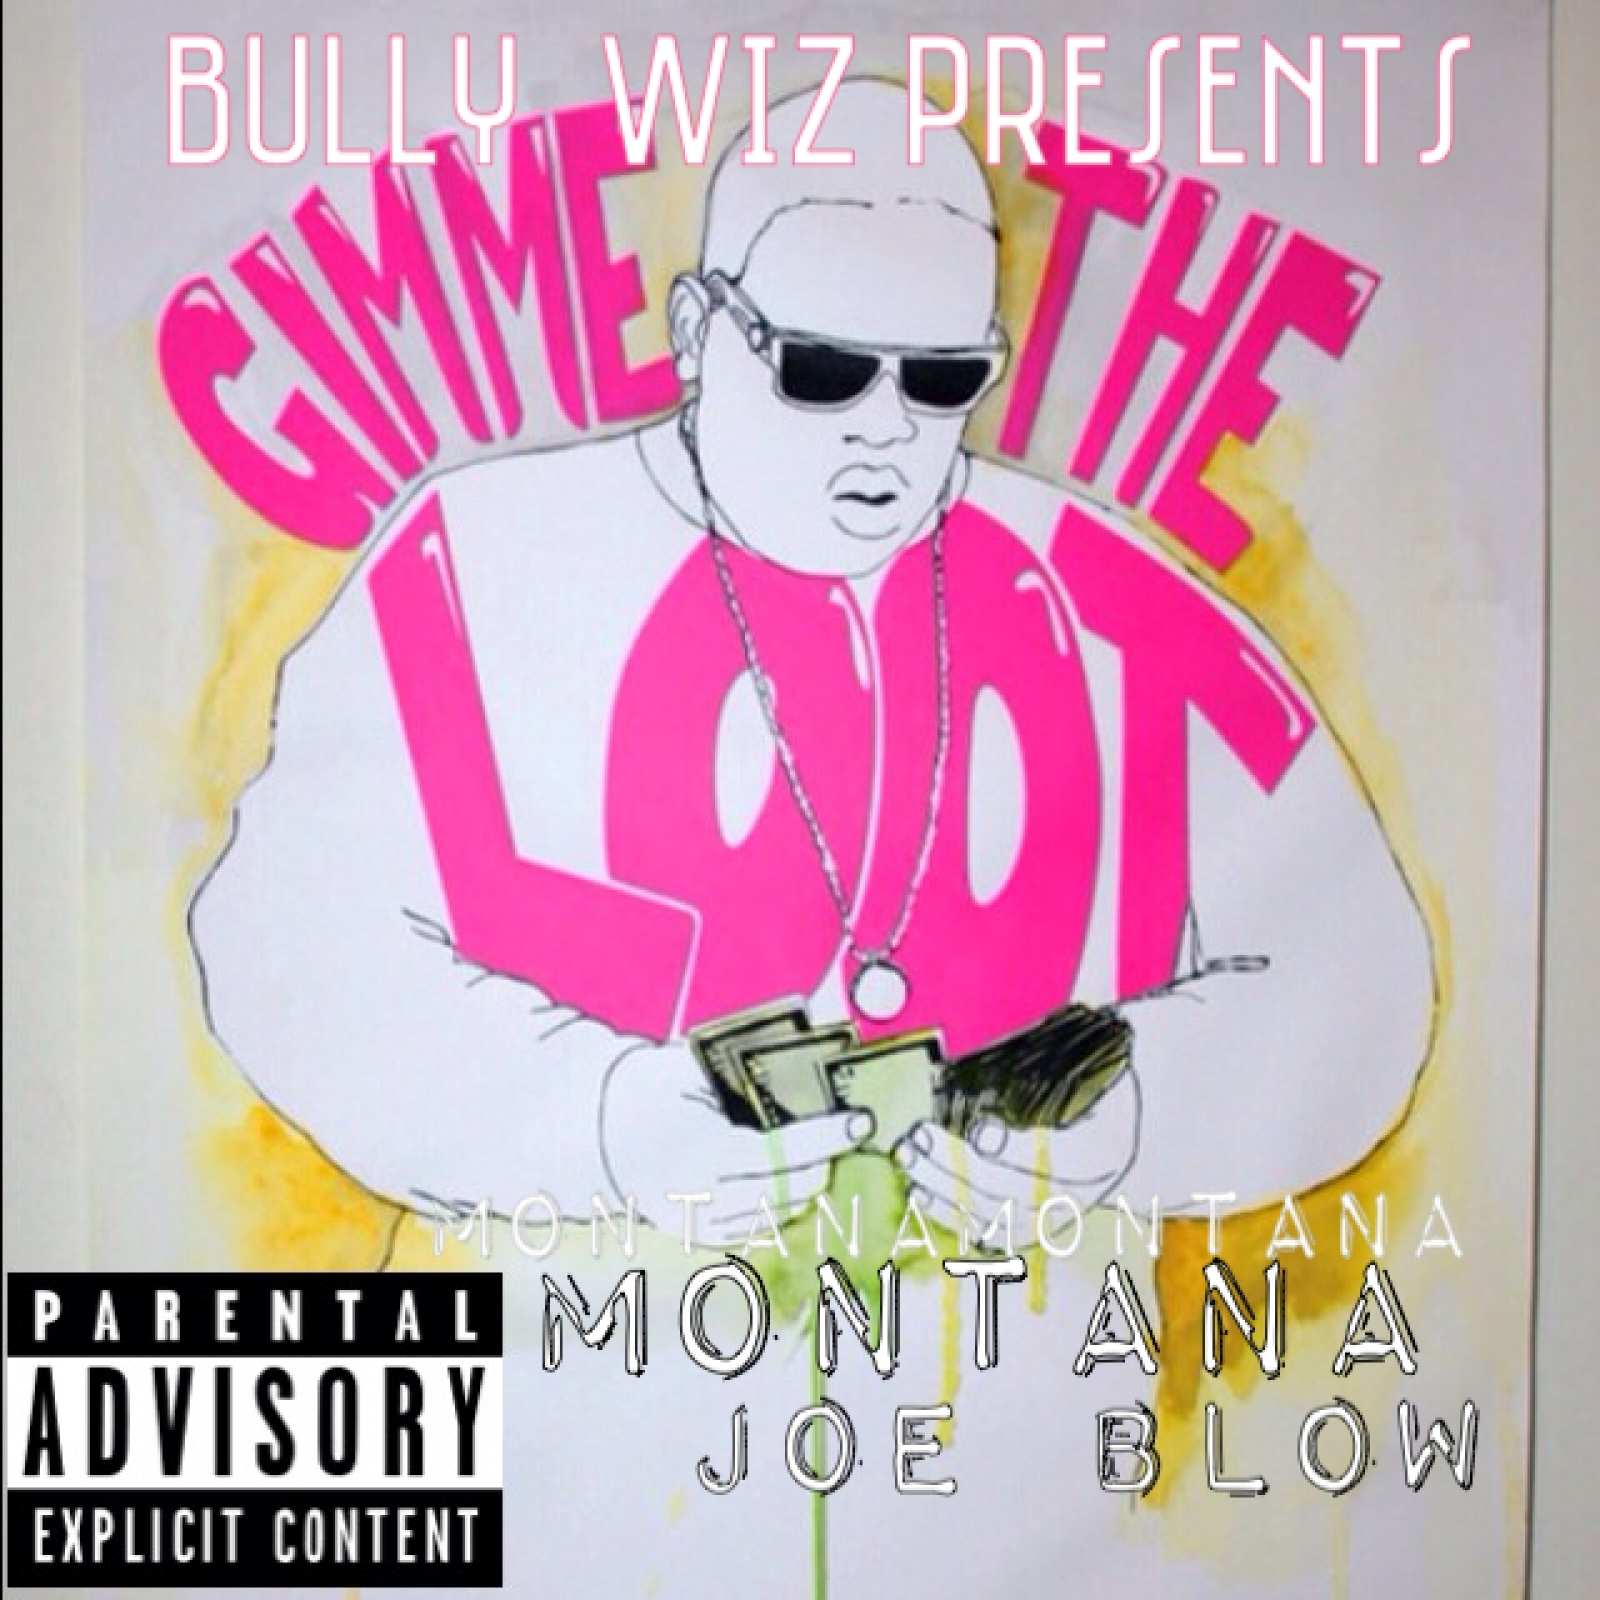 Bully Wiz Presents Montana Montana Montana x Joe Blow - Gimme The Loot [Thizzler.com Exclusive]